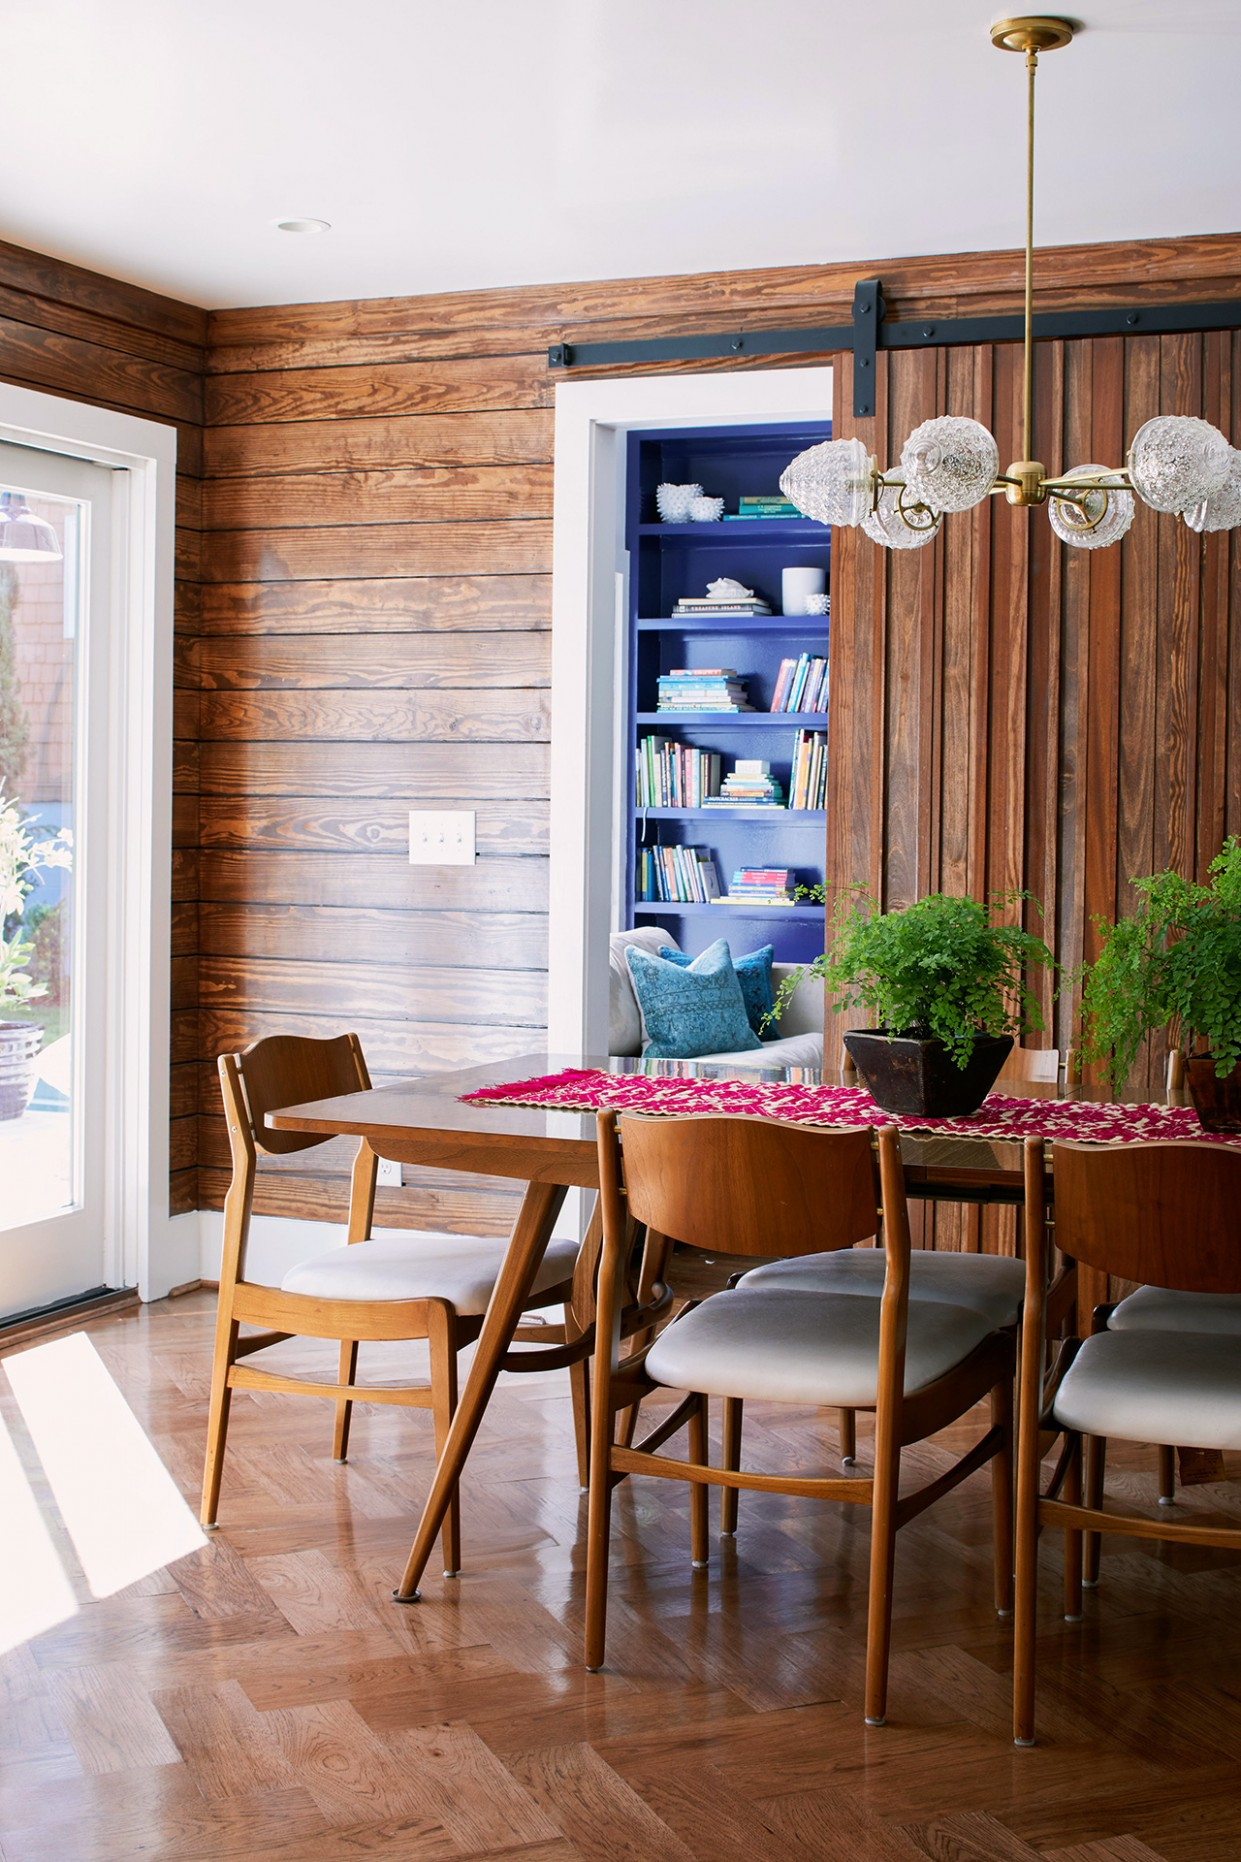 Our Favorite Dining Room Decorating Ideas  Better Homes & Gardens - Dining Room Ideas With Hardwood Floors